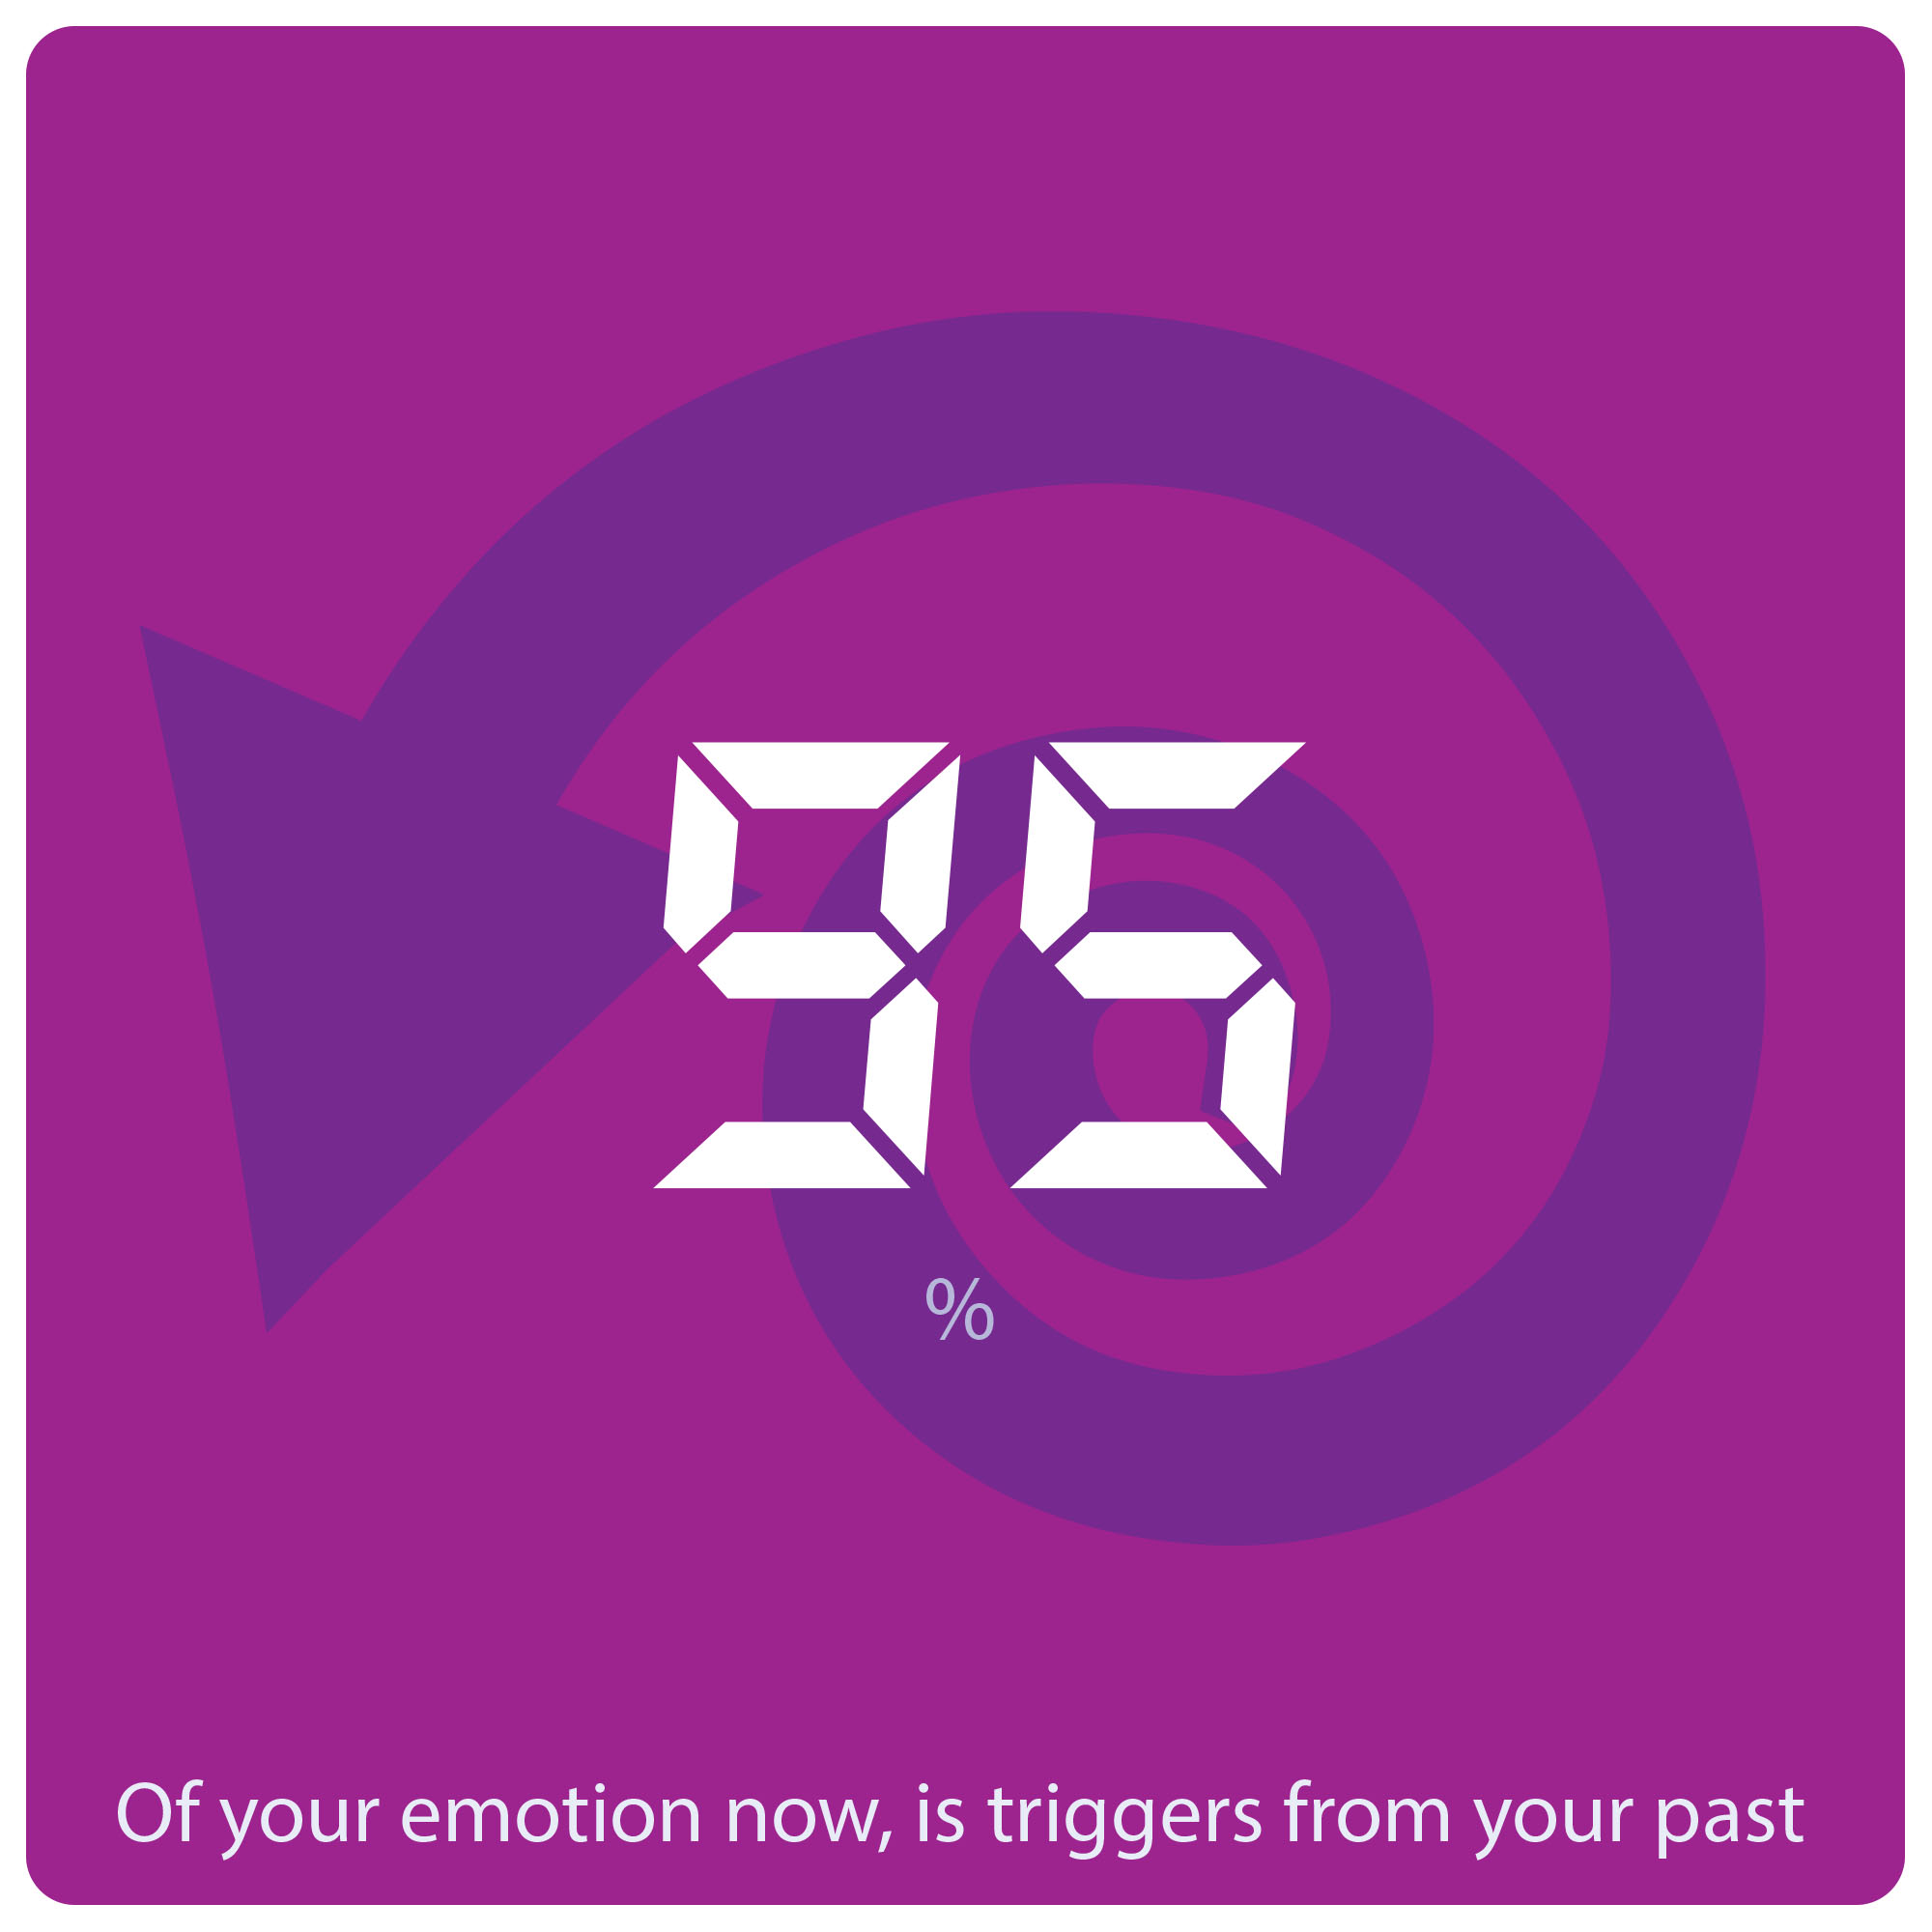 Emotion-from-past-triggers